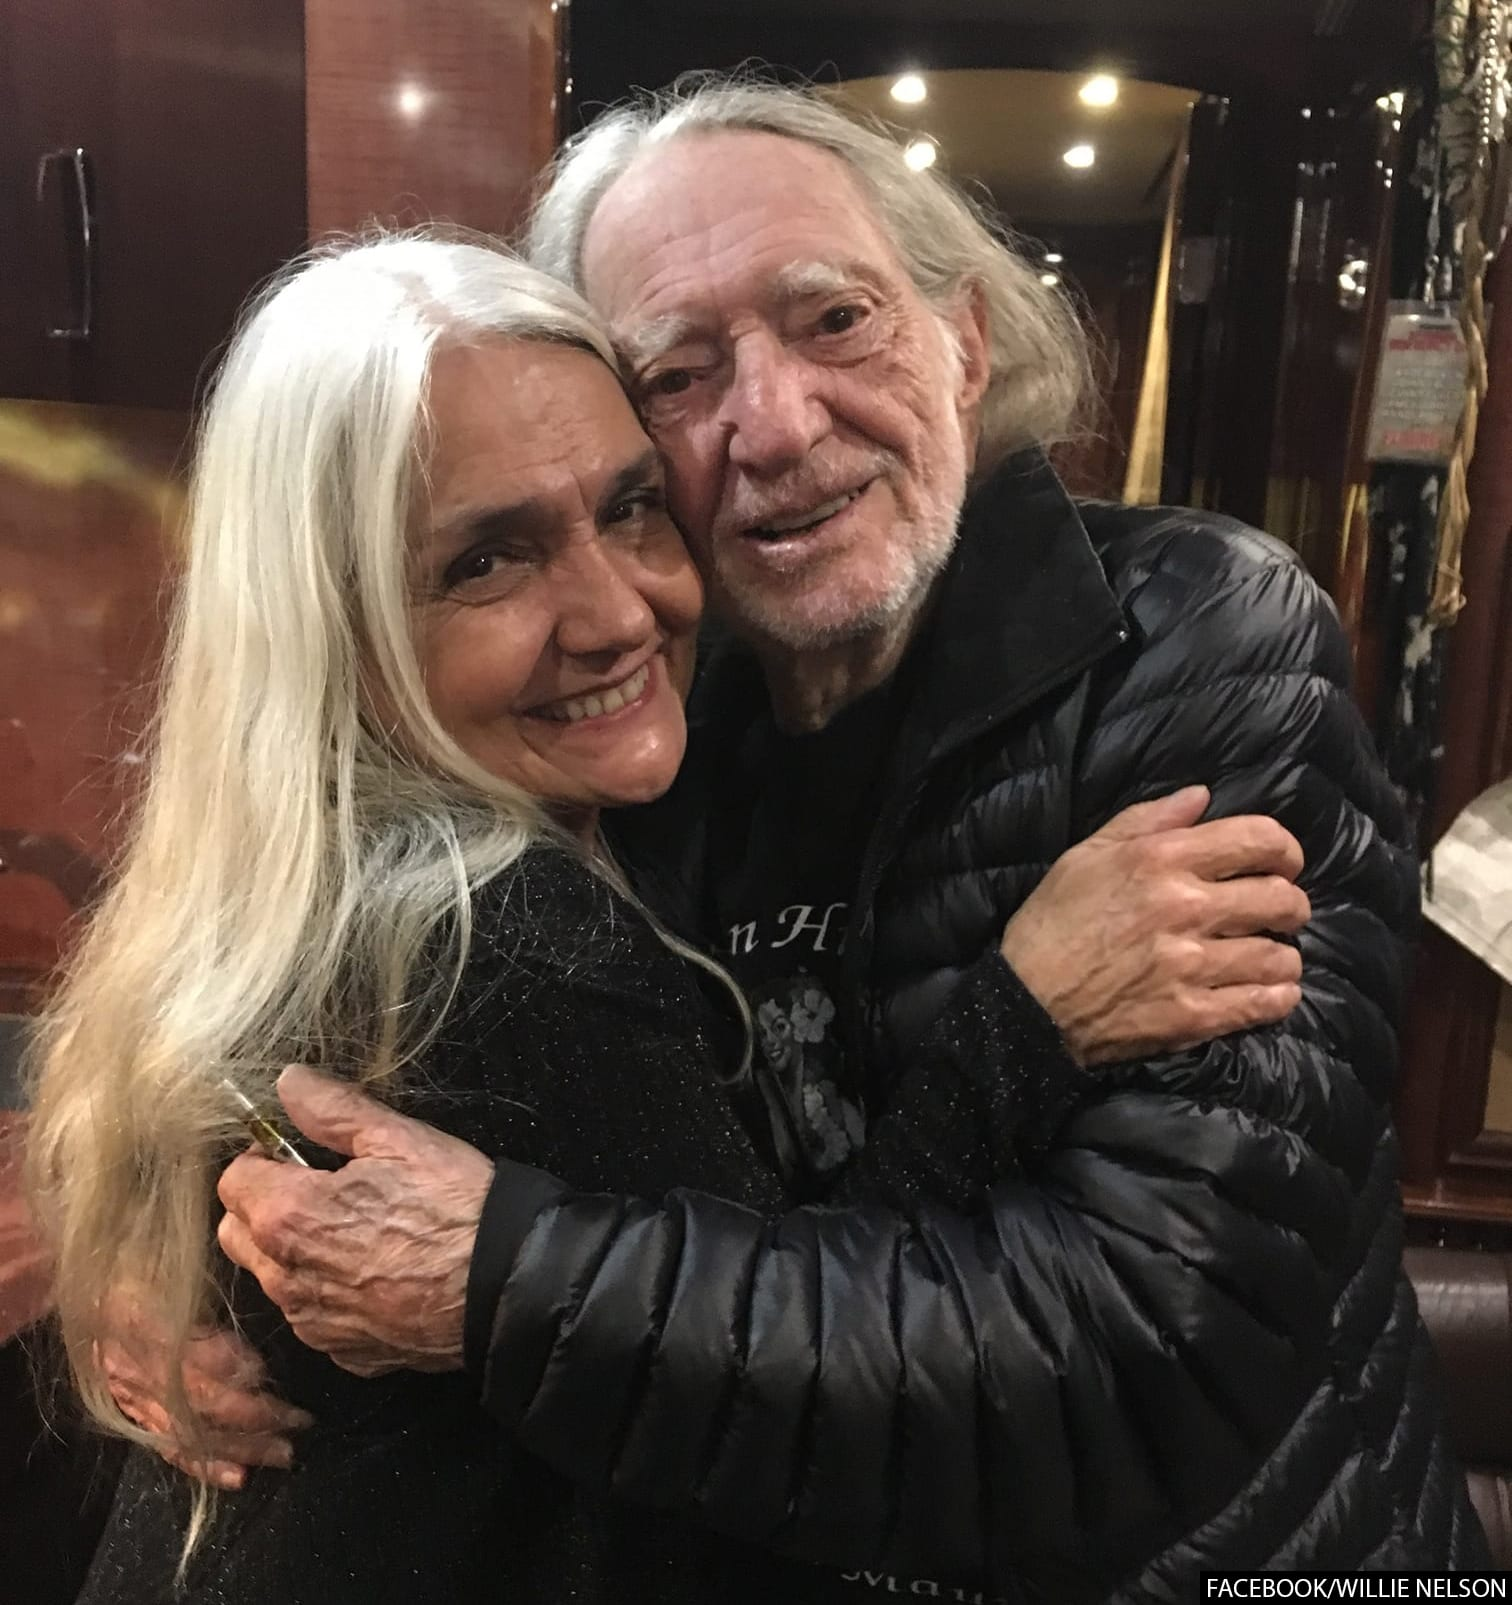 Willie Nelson and Lana Nelson